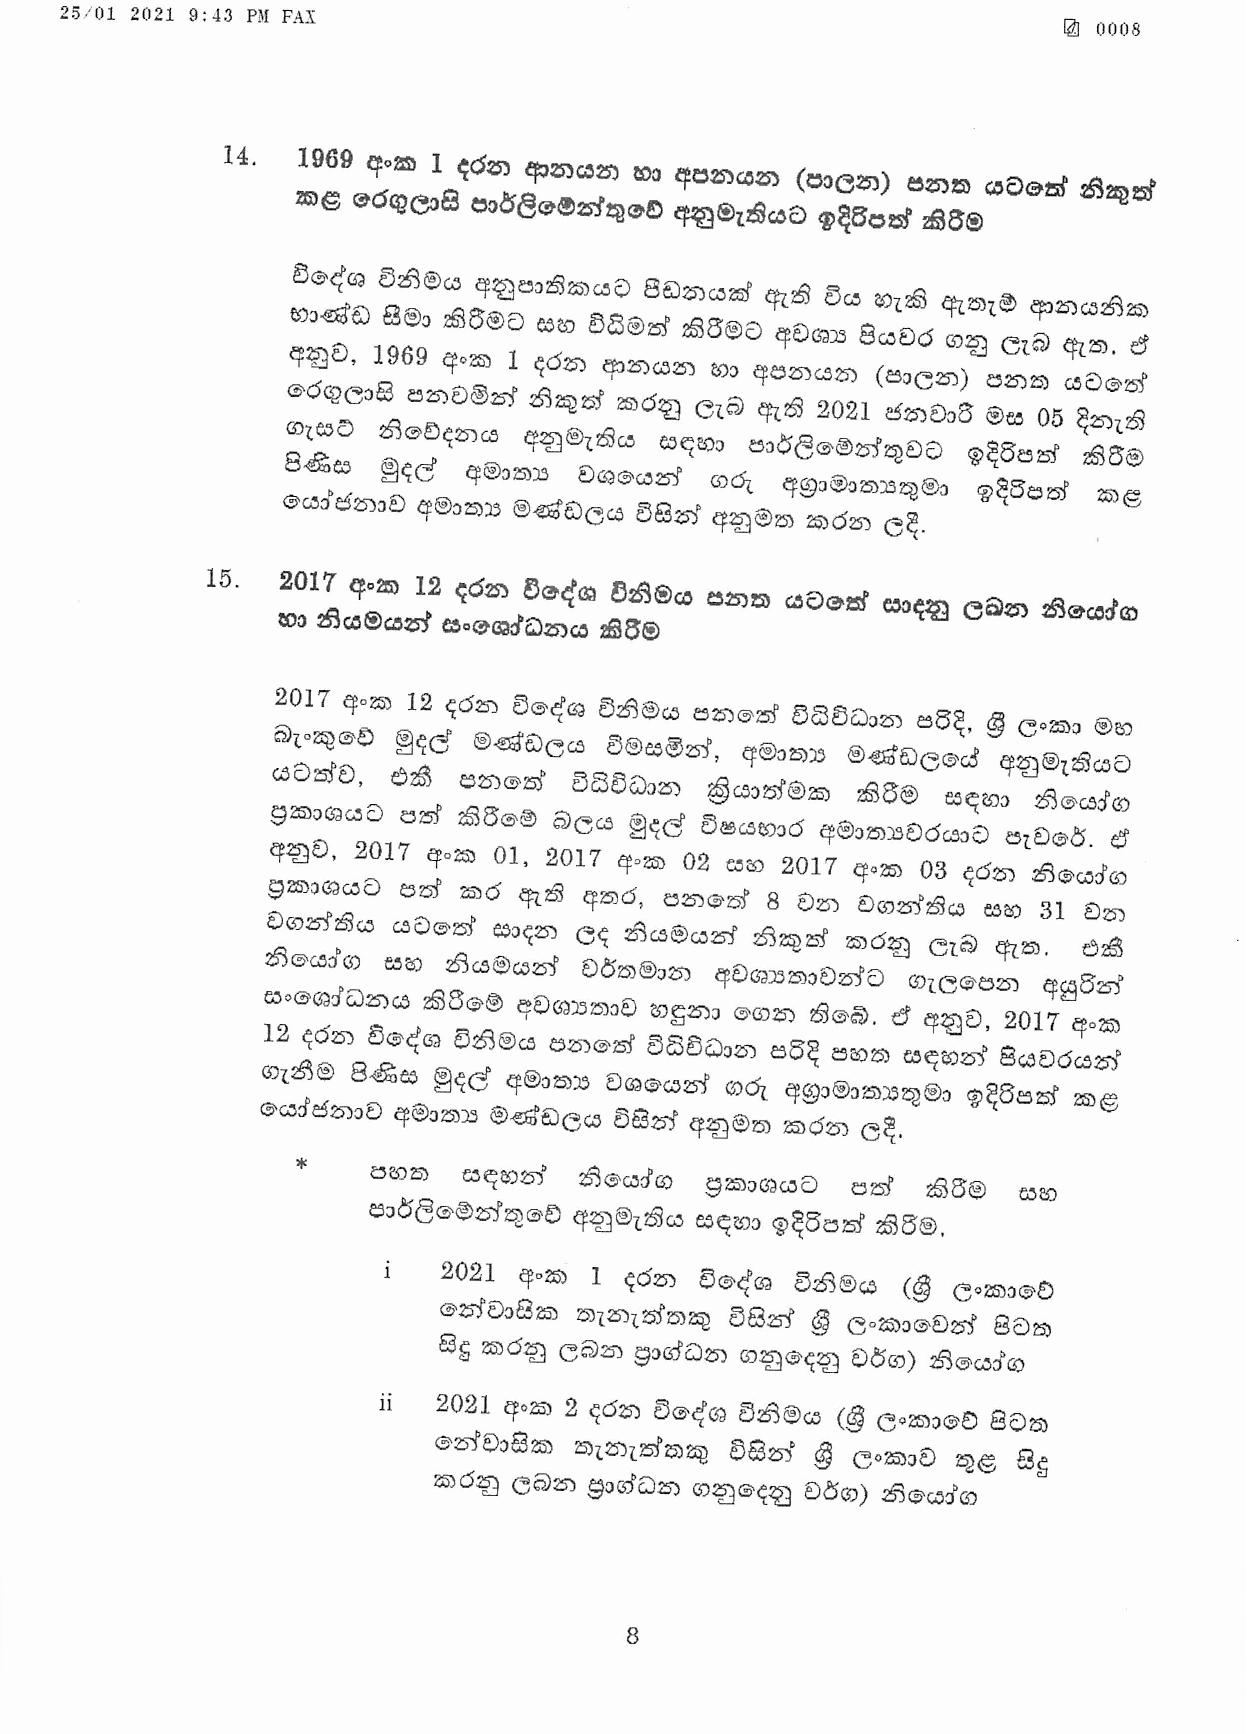 Cabinet Decision on 25.01.2021 page 008